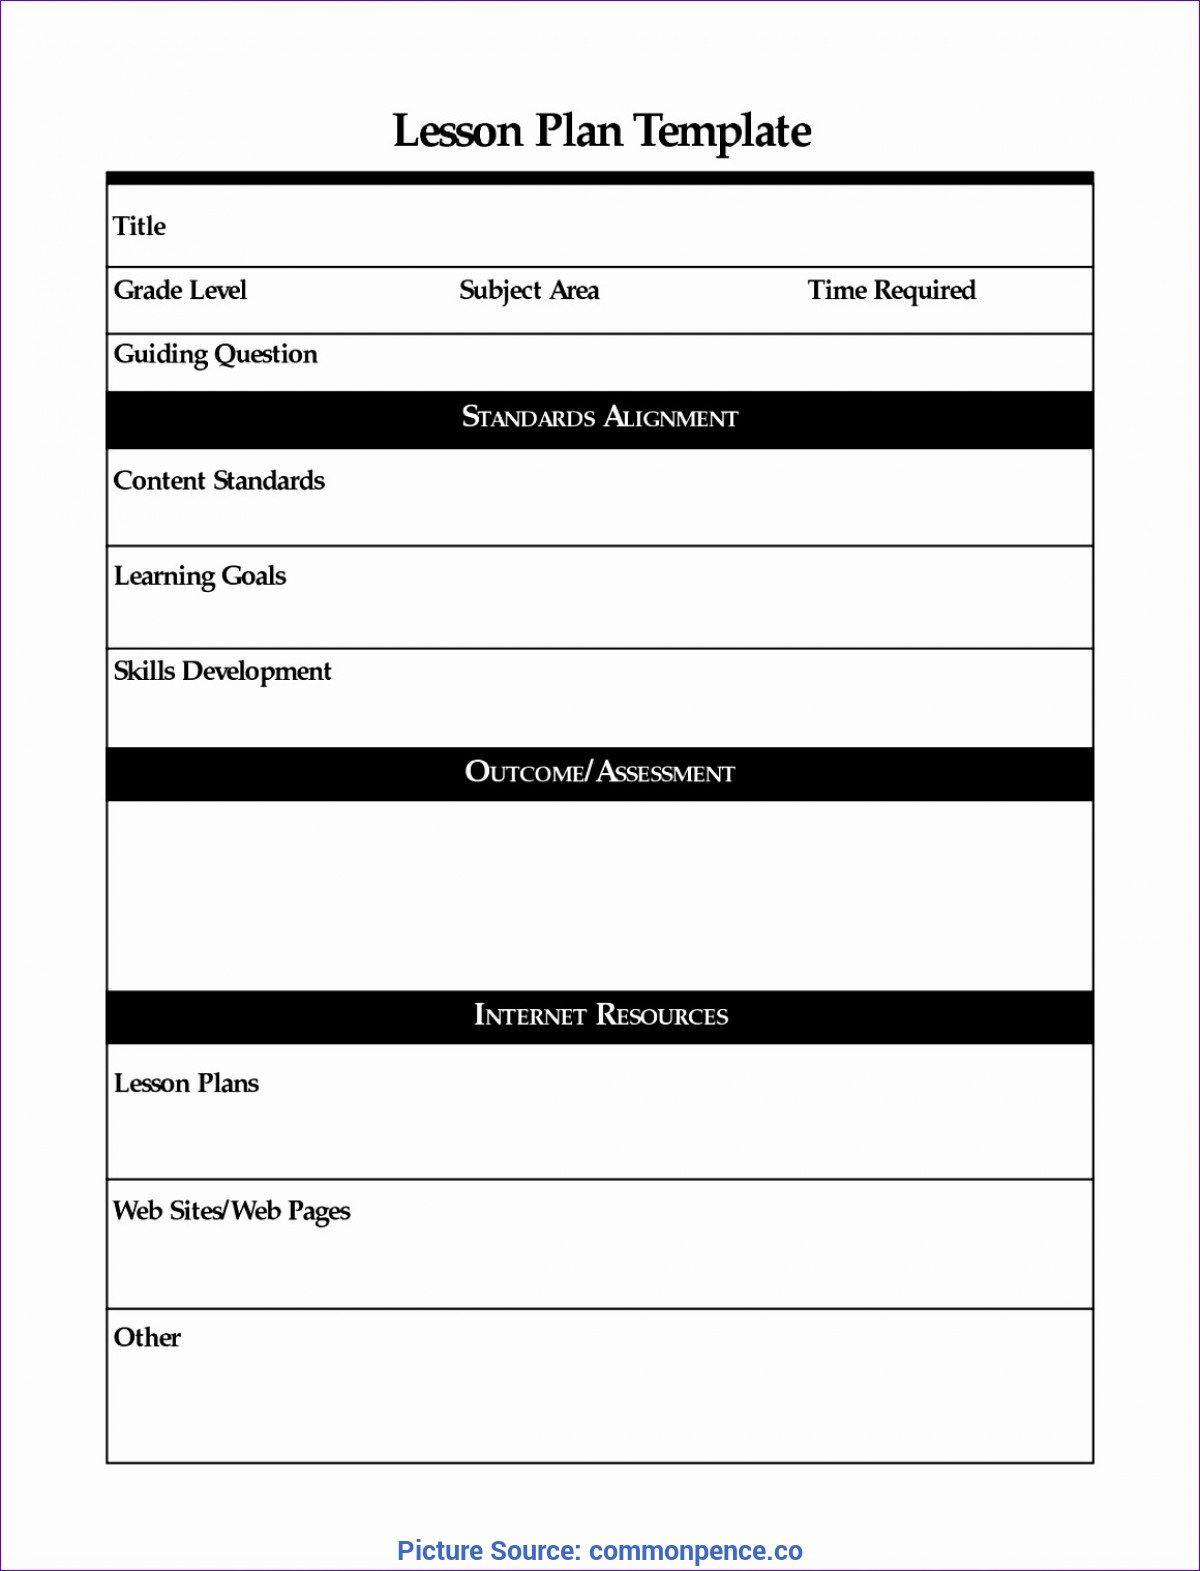 Newest Lesson Plan Template Quebec Resource Planner Excel Template - Commonpenc